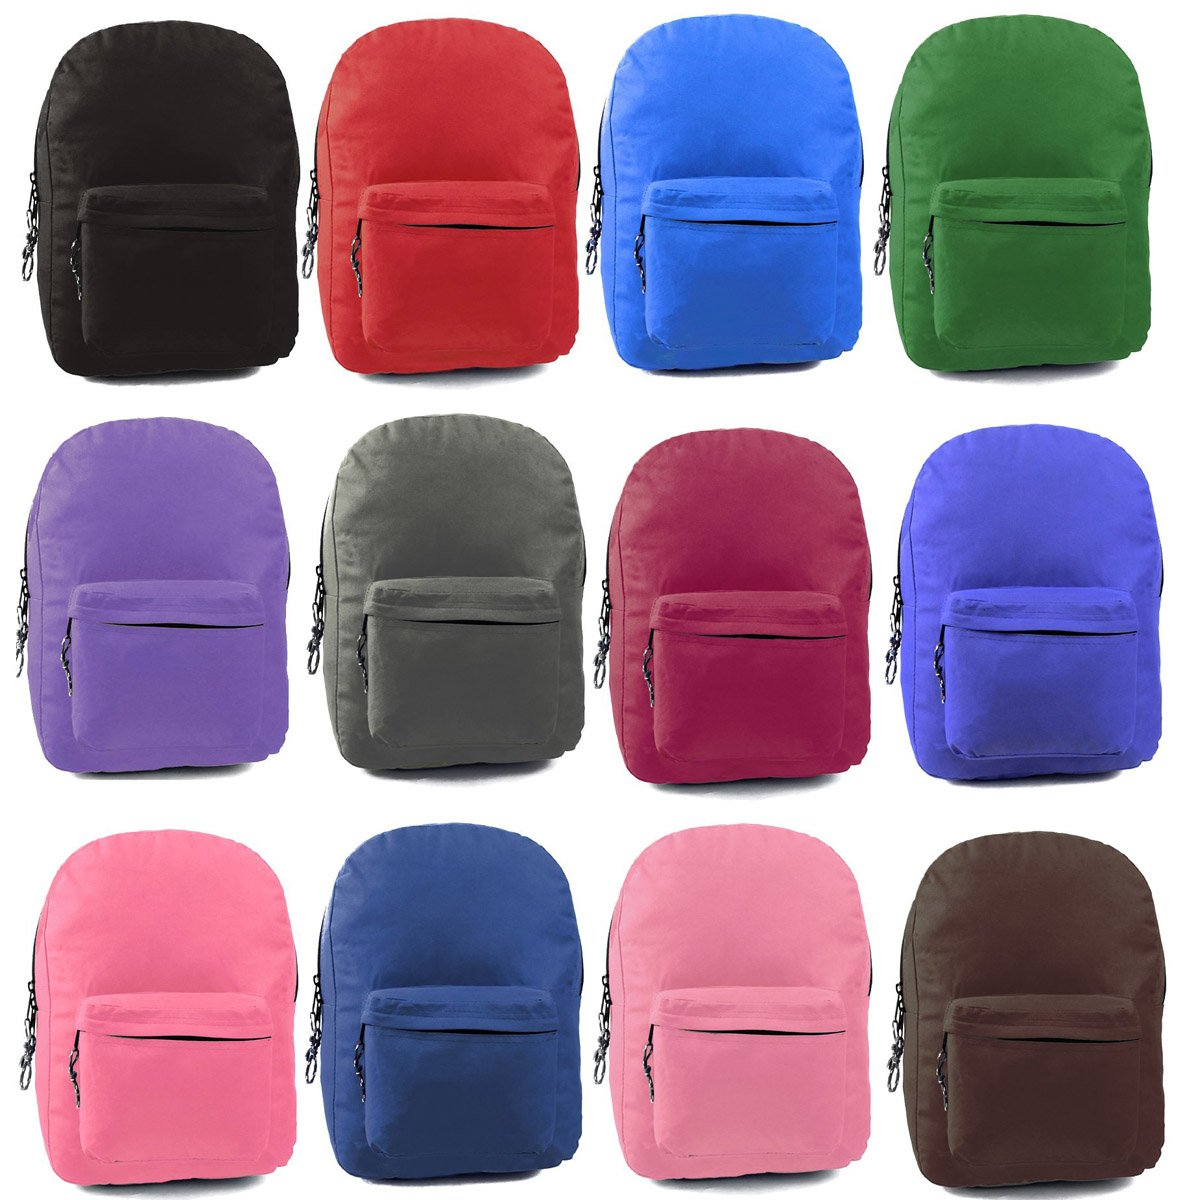 Wholesale 17'' Backpacks In 12 Solid Colors - Case of 24 by AIR EXPRESS